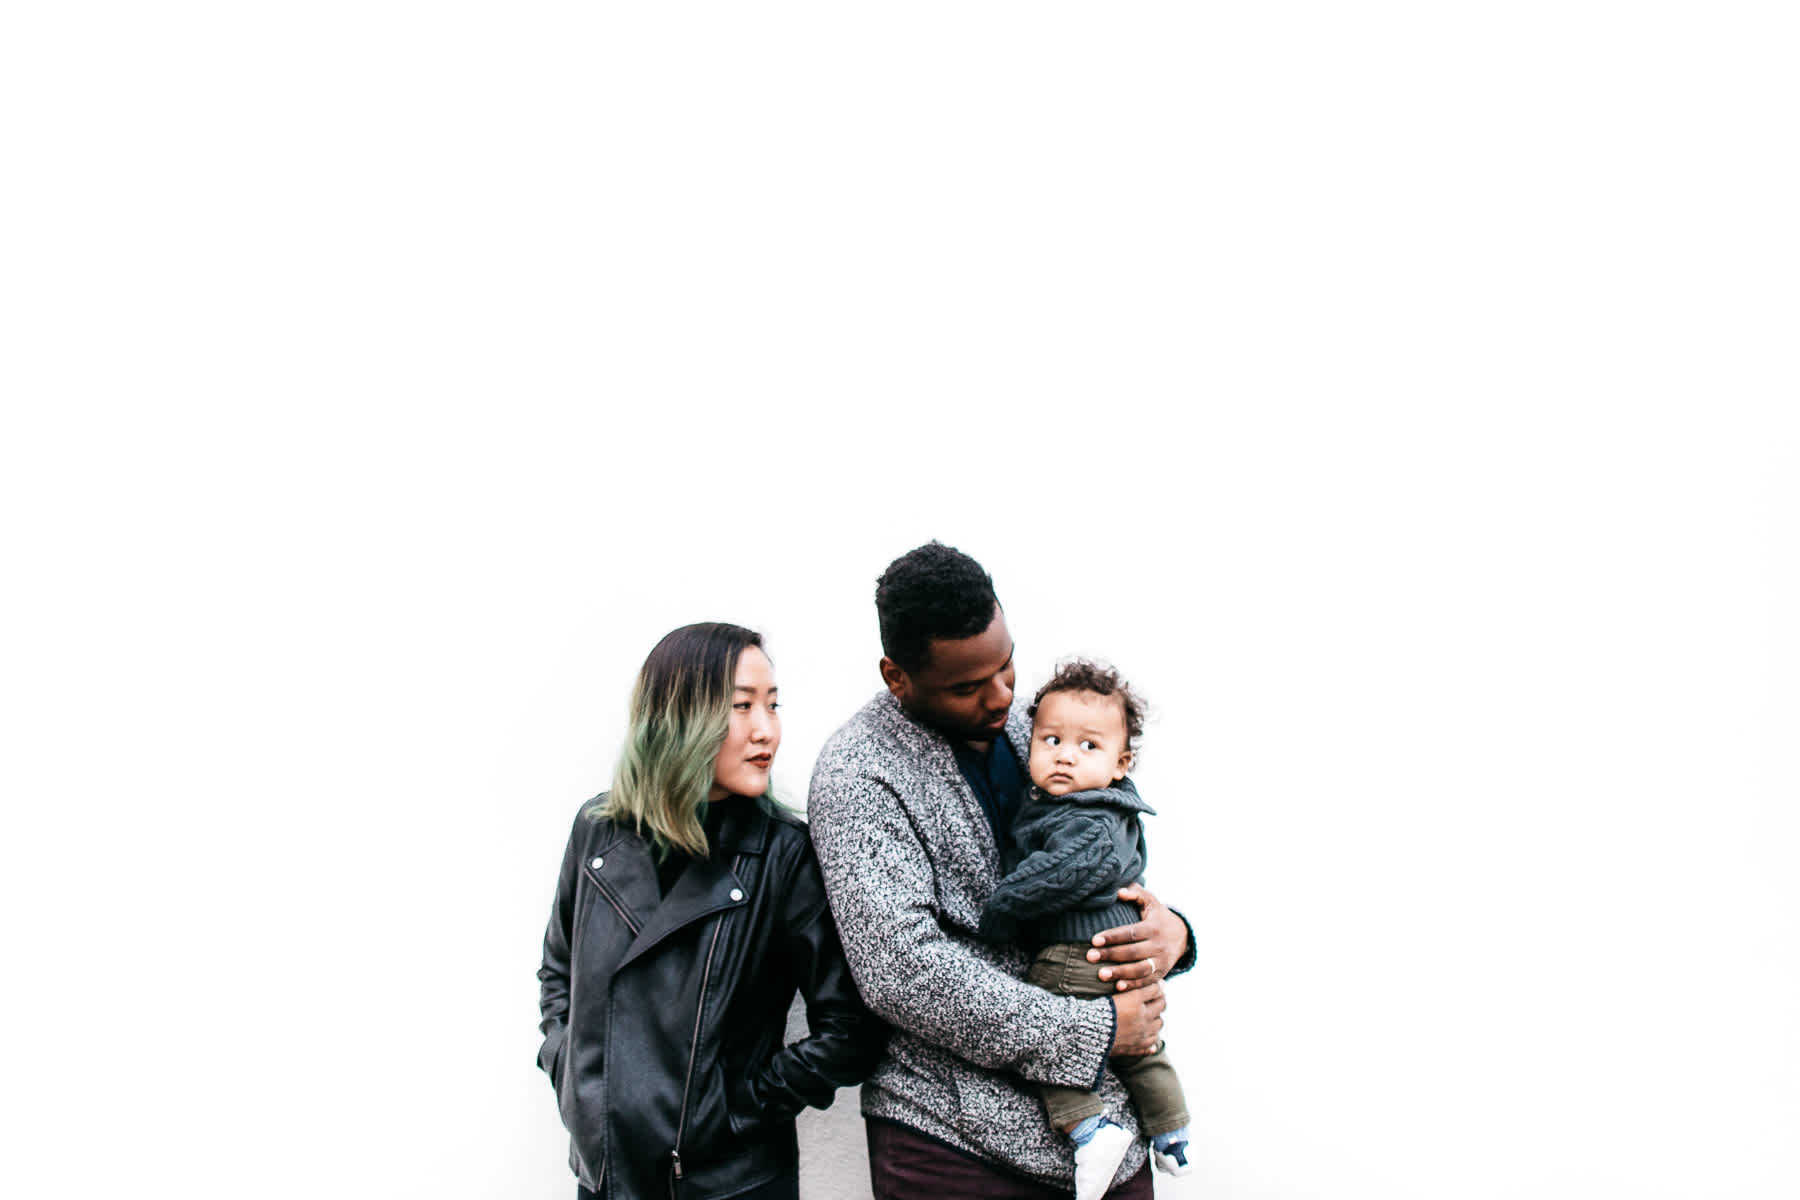 oakland-redwoods-urban-family-session-42